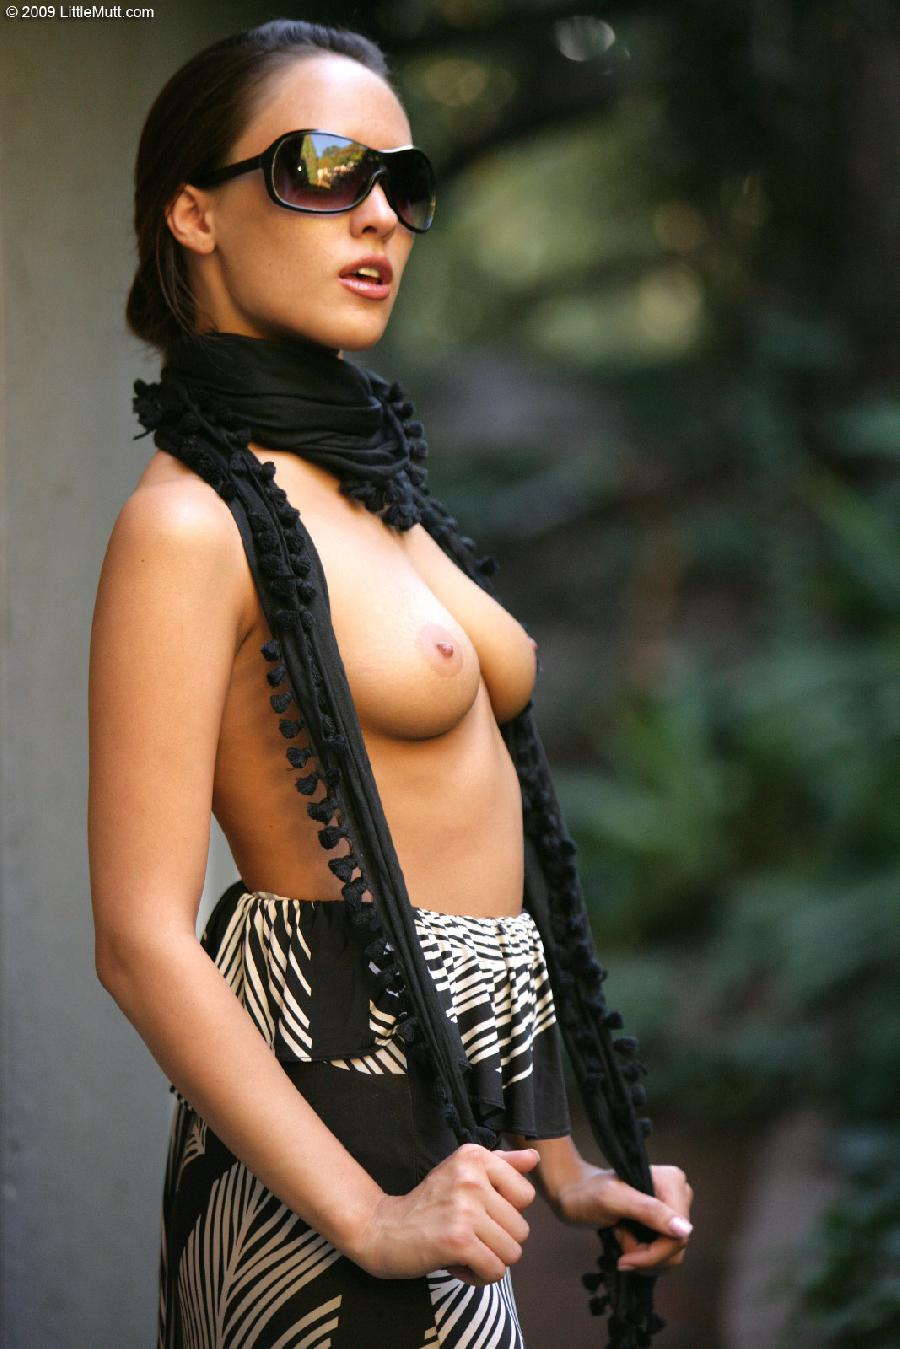 Sexy Nadia Aria in a scarf - 2